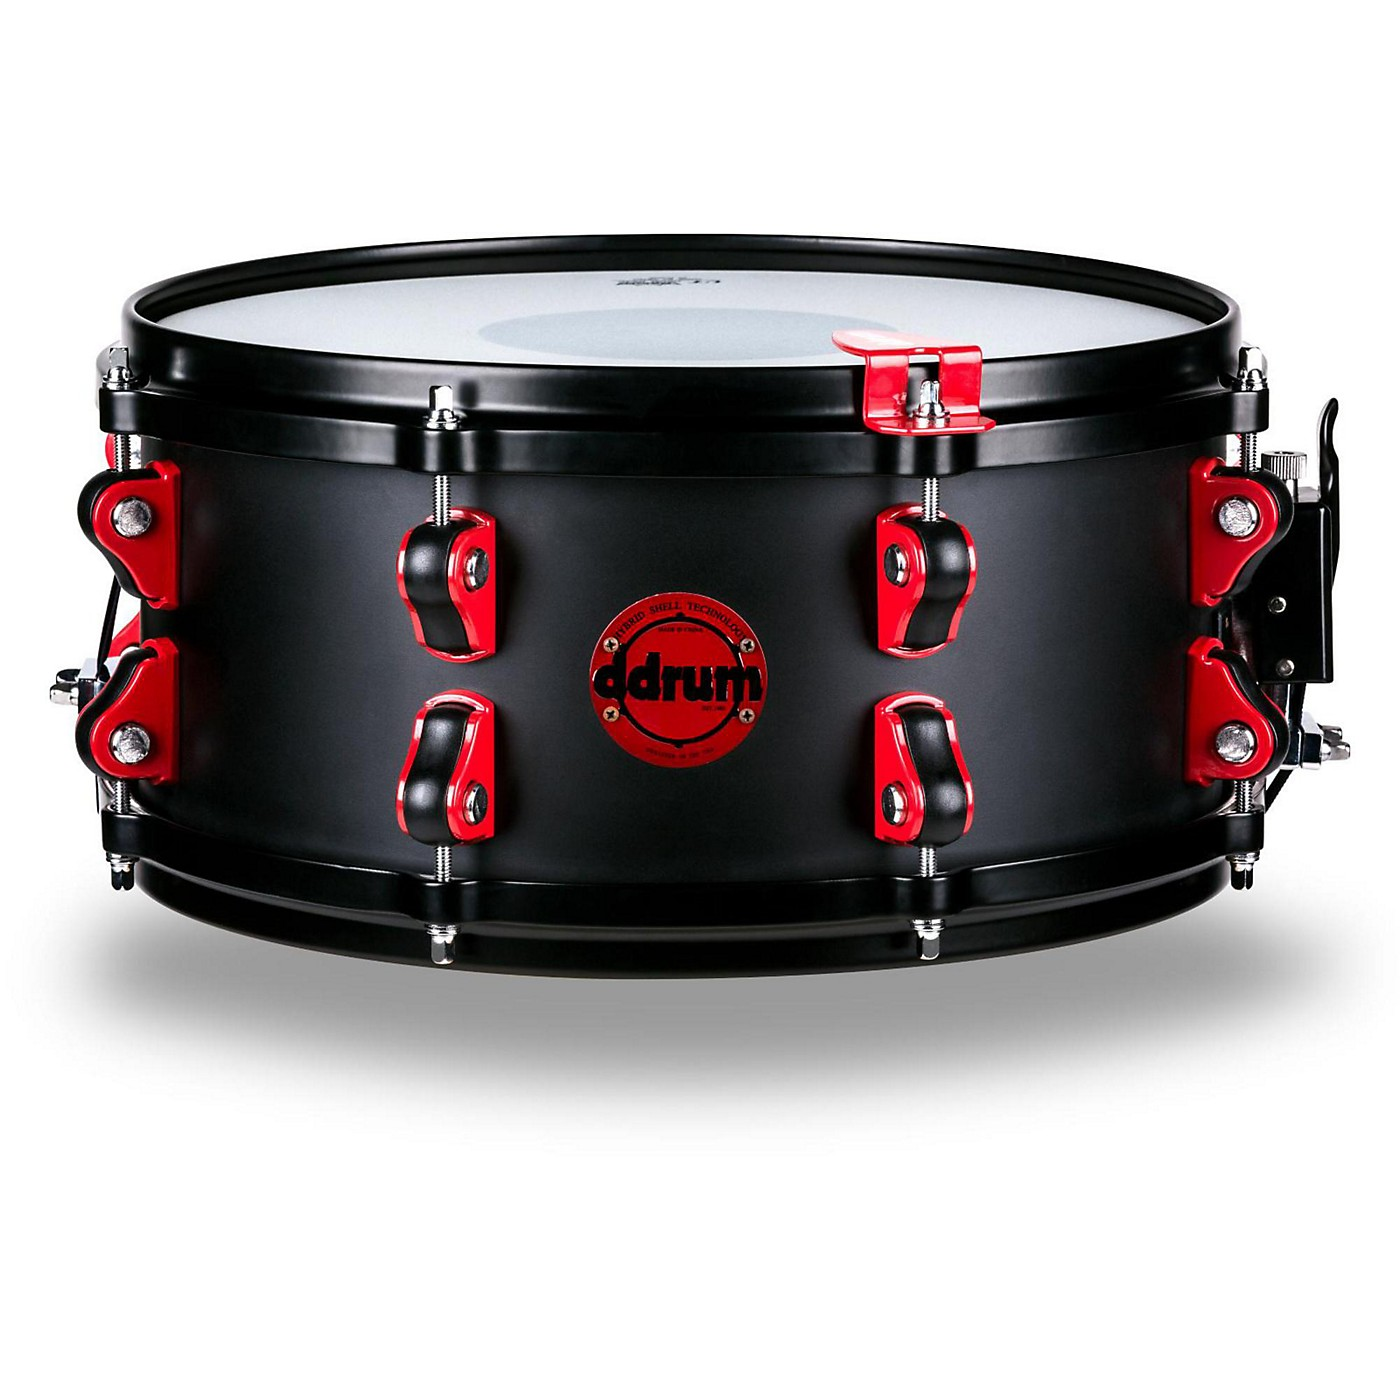 ddrum Hybrid Snare Drum with Trigger thumbnail